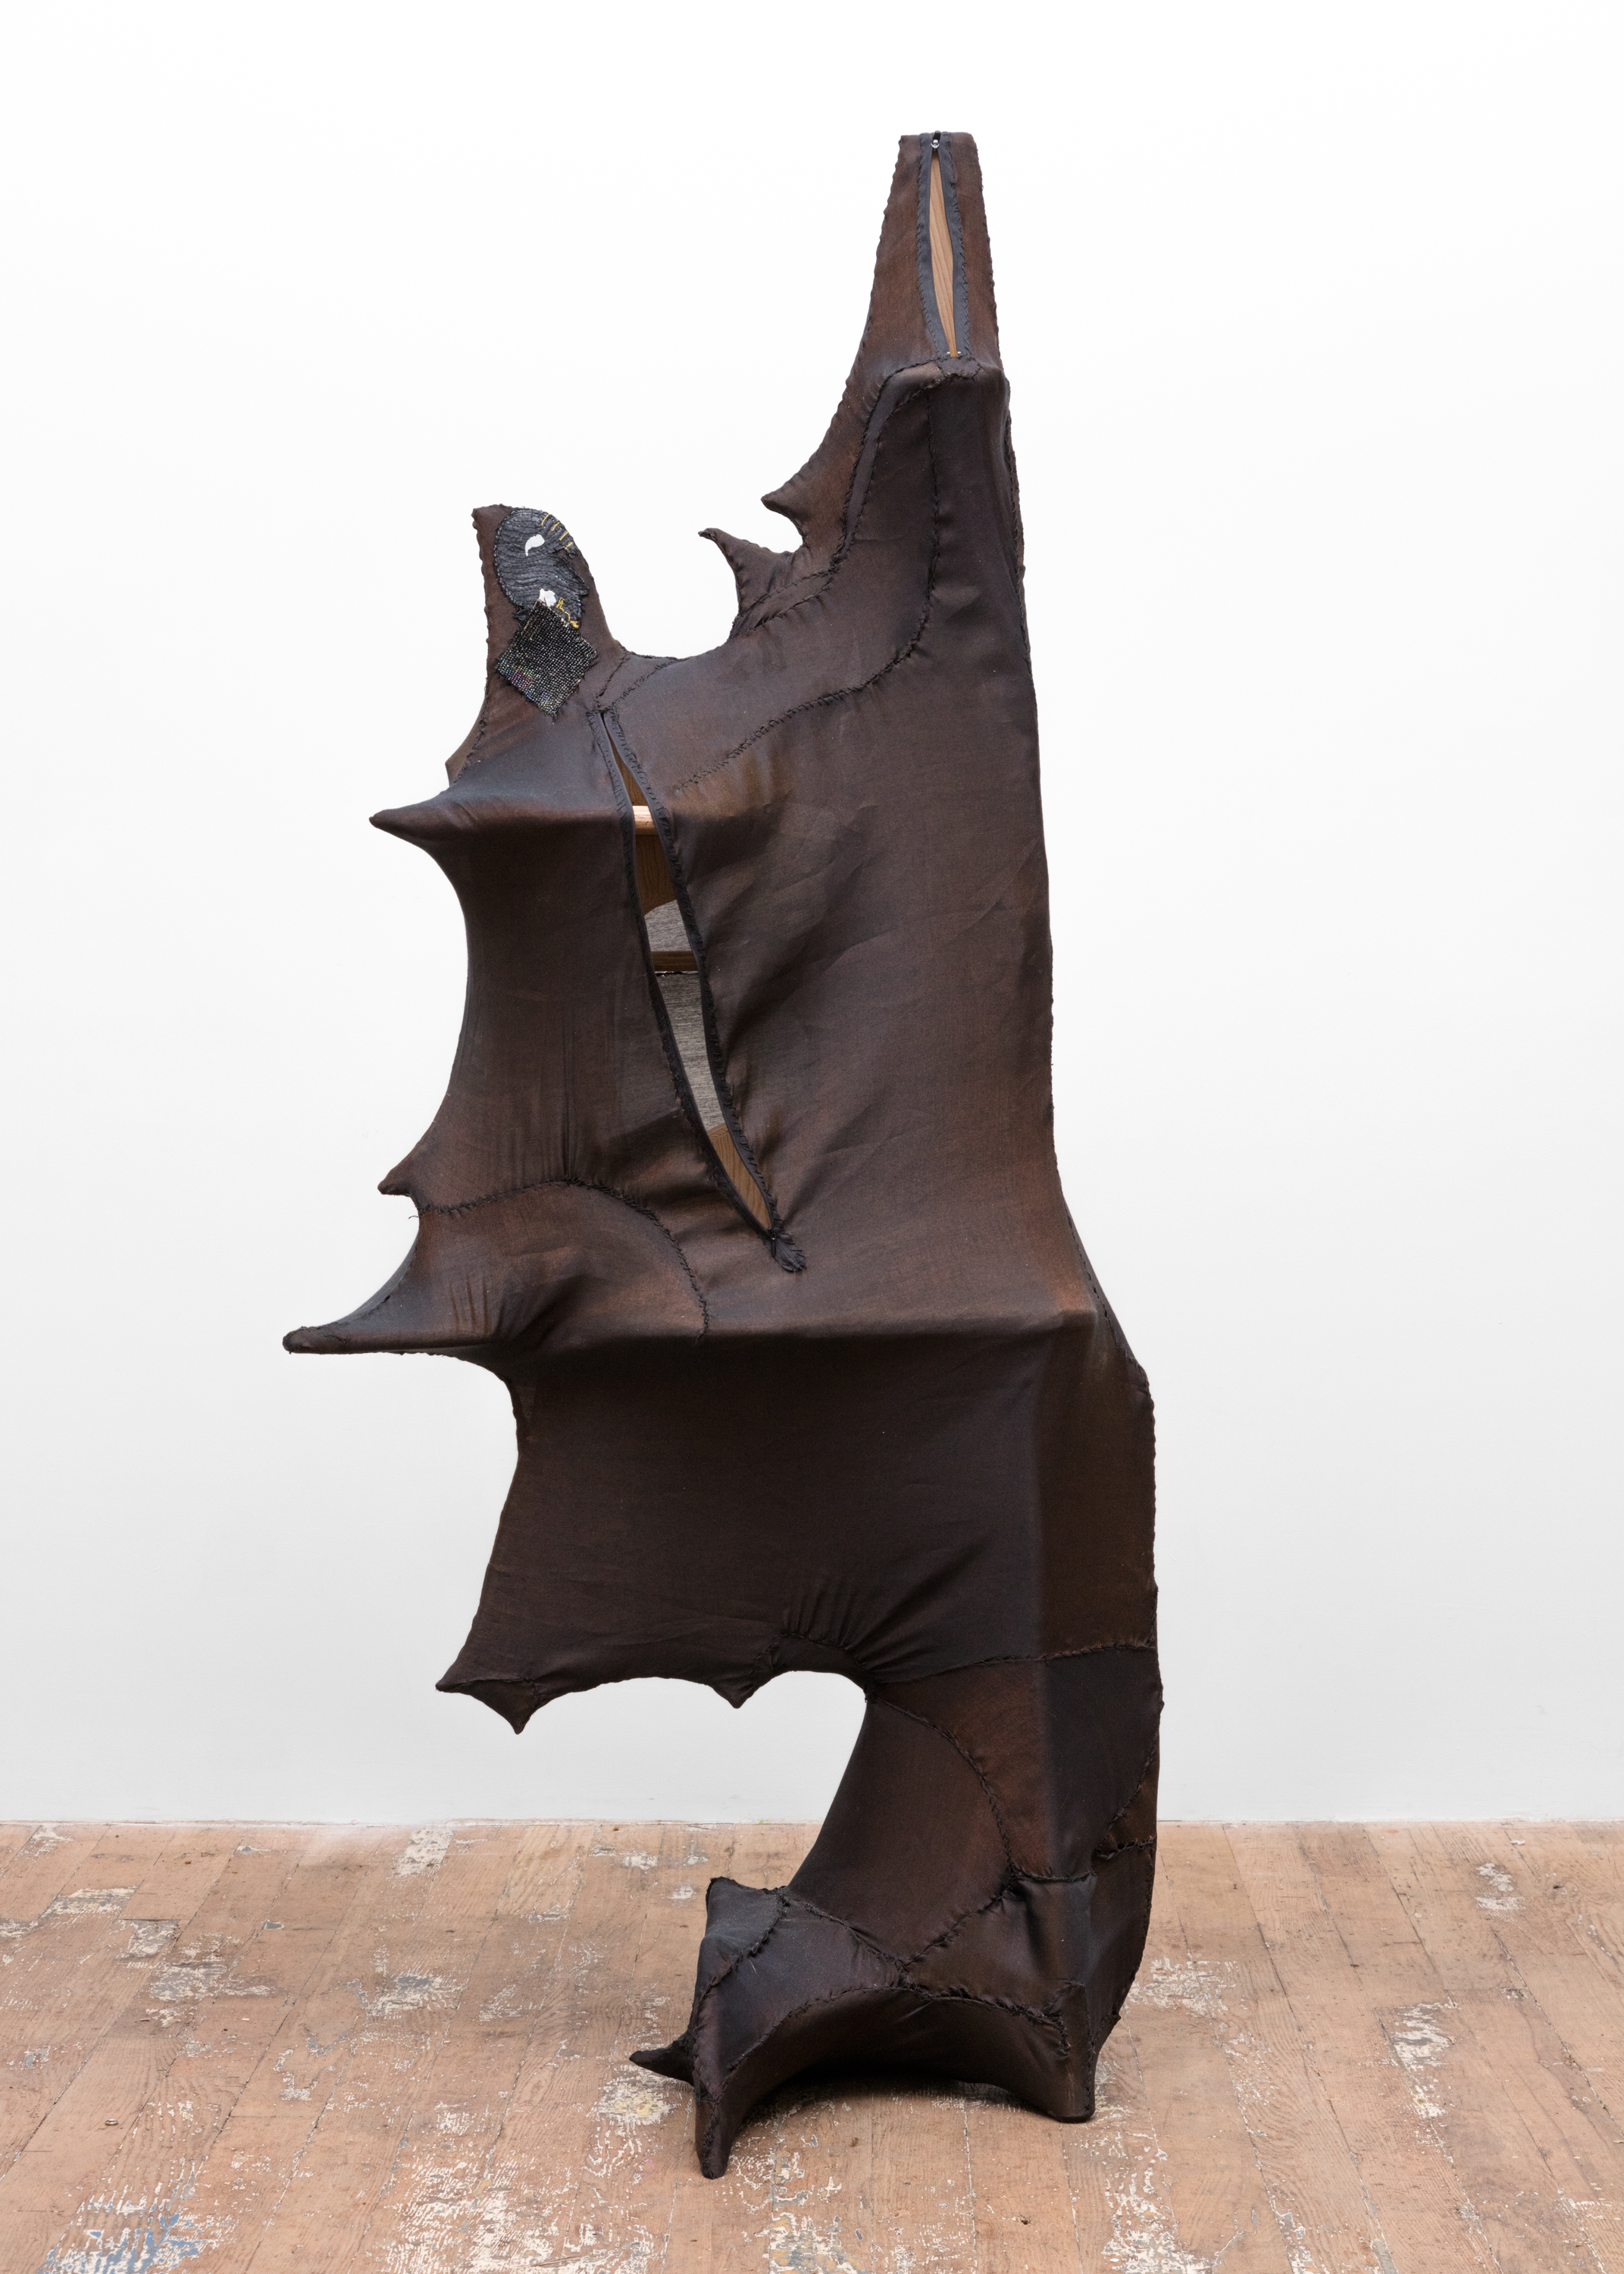 Night Cabinet (Little Miss Attitude) 2016 Plywood, wood, steel, silk, zippers 72 x 32 x 26 inches (182.88 x 81.28 x 66.04 cm)